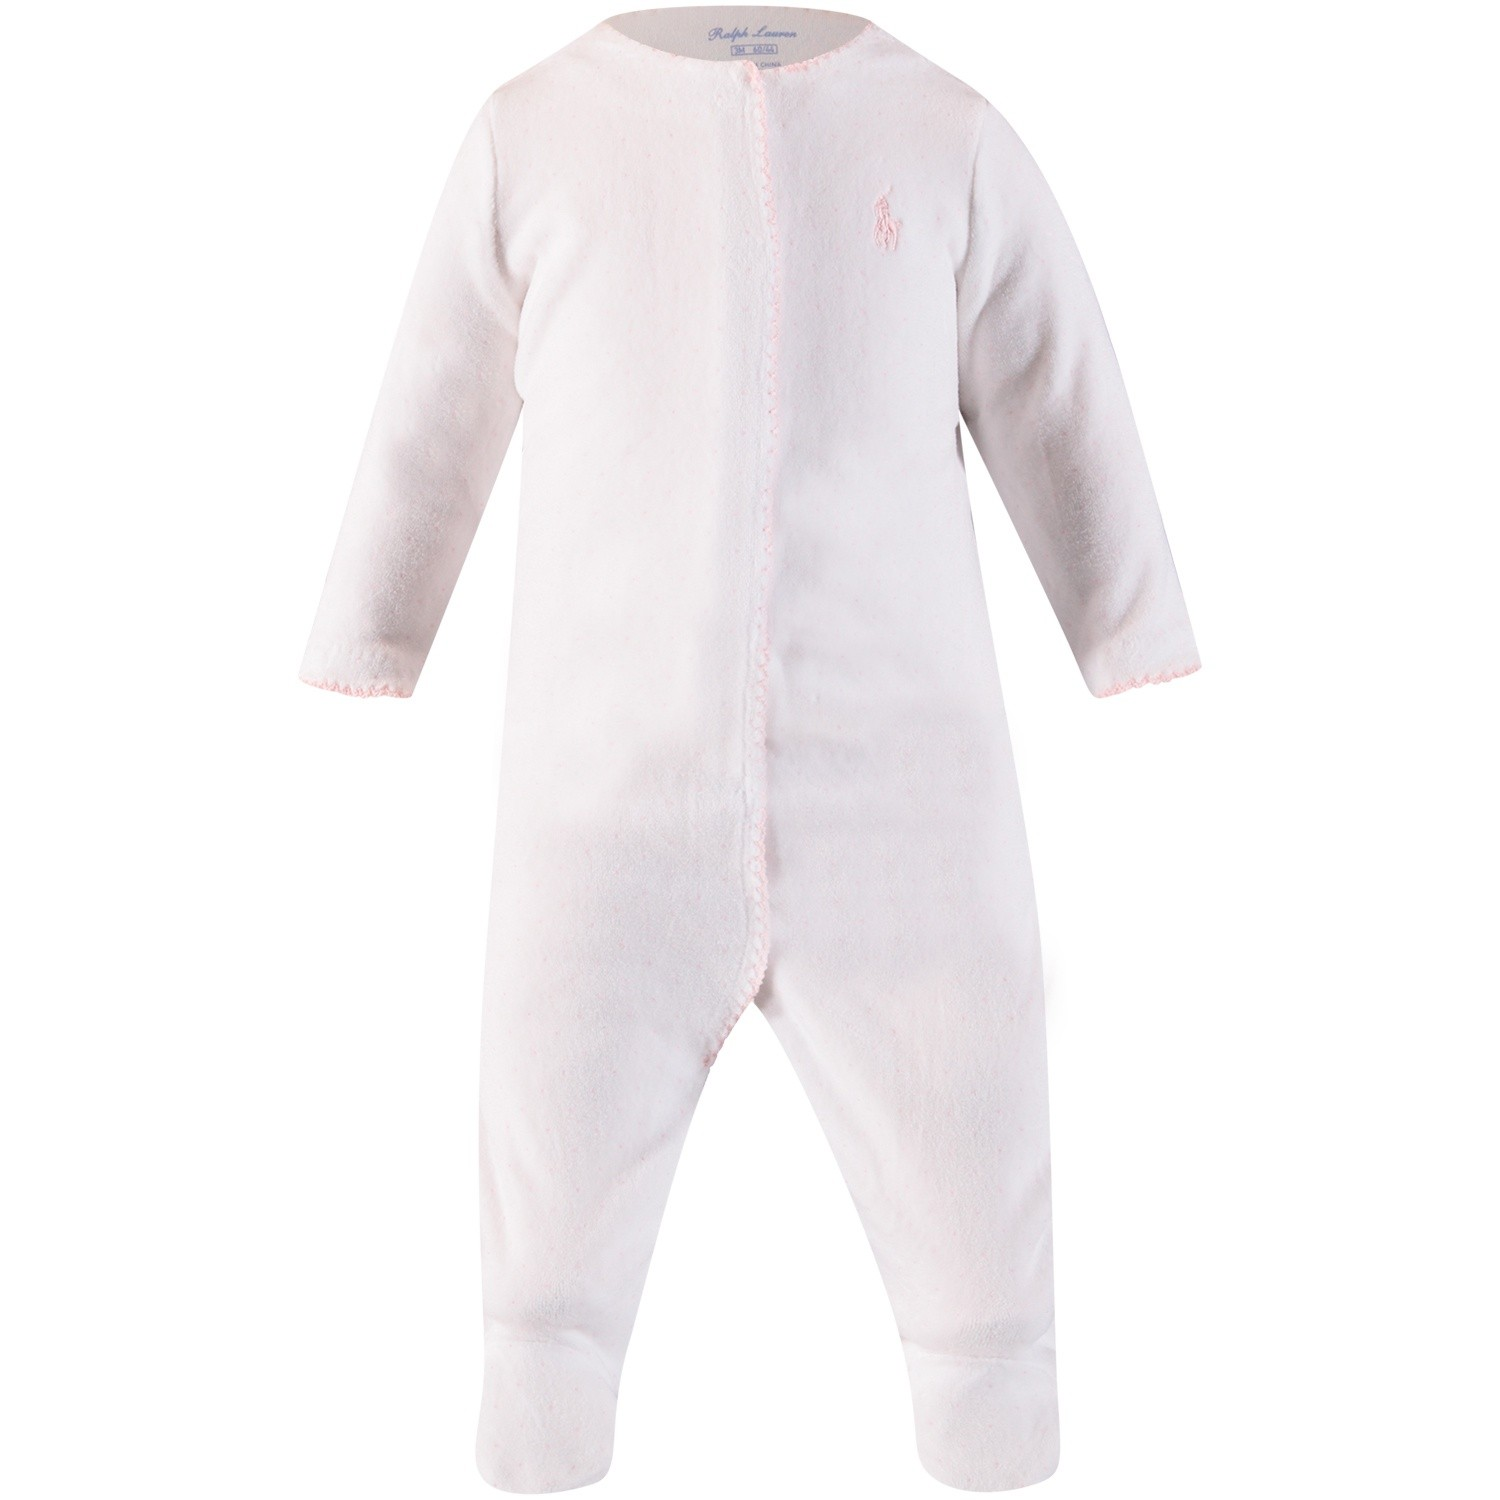 fec5c8e0aa Picture of Ralph Lauren 310701313 baby playsuit white